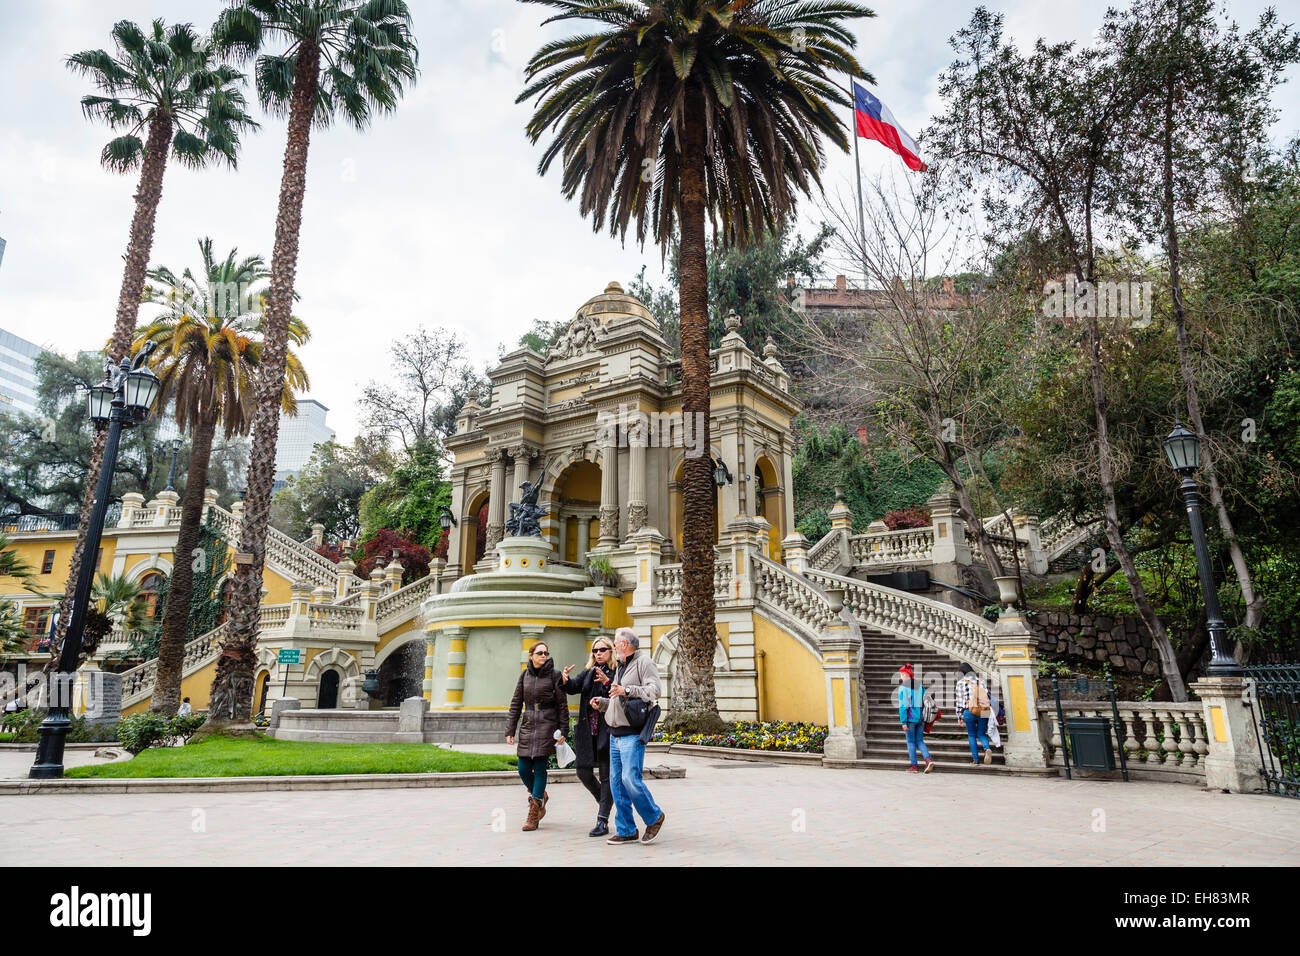 Plaza Neptuno at Cerro Santa Lucia, Santiago, Chile, South America Stock Photo